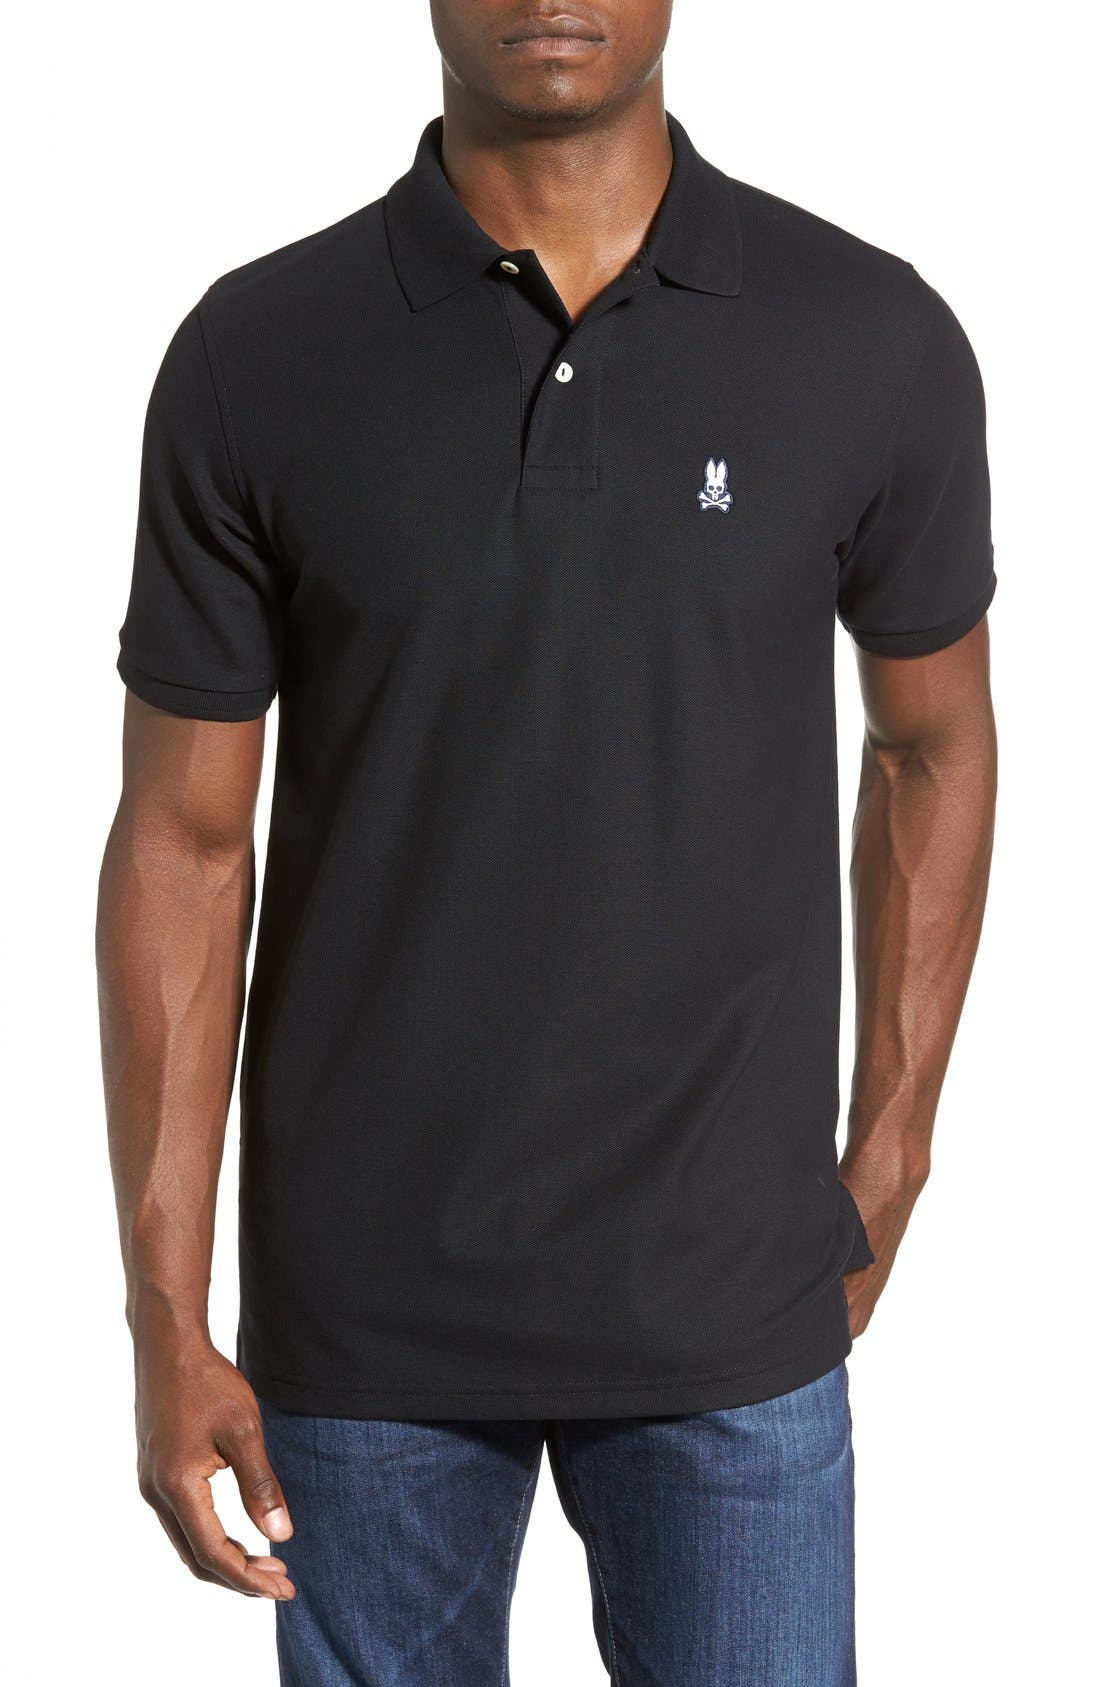 Alternate Image 1 Selected - Psycho Bunny The Classic Piqué Knit Polo